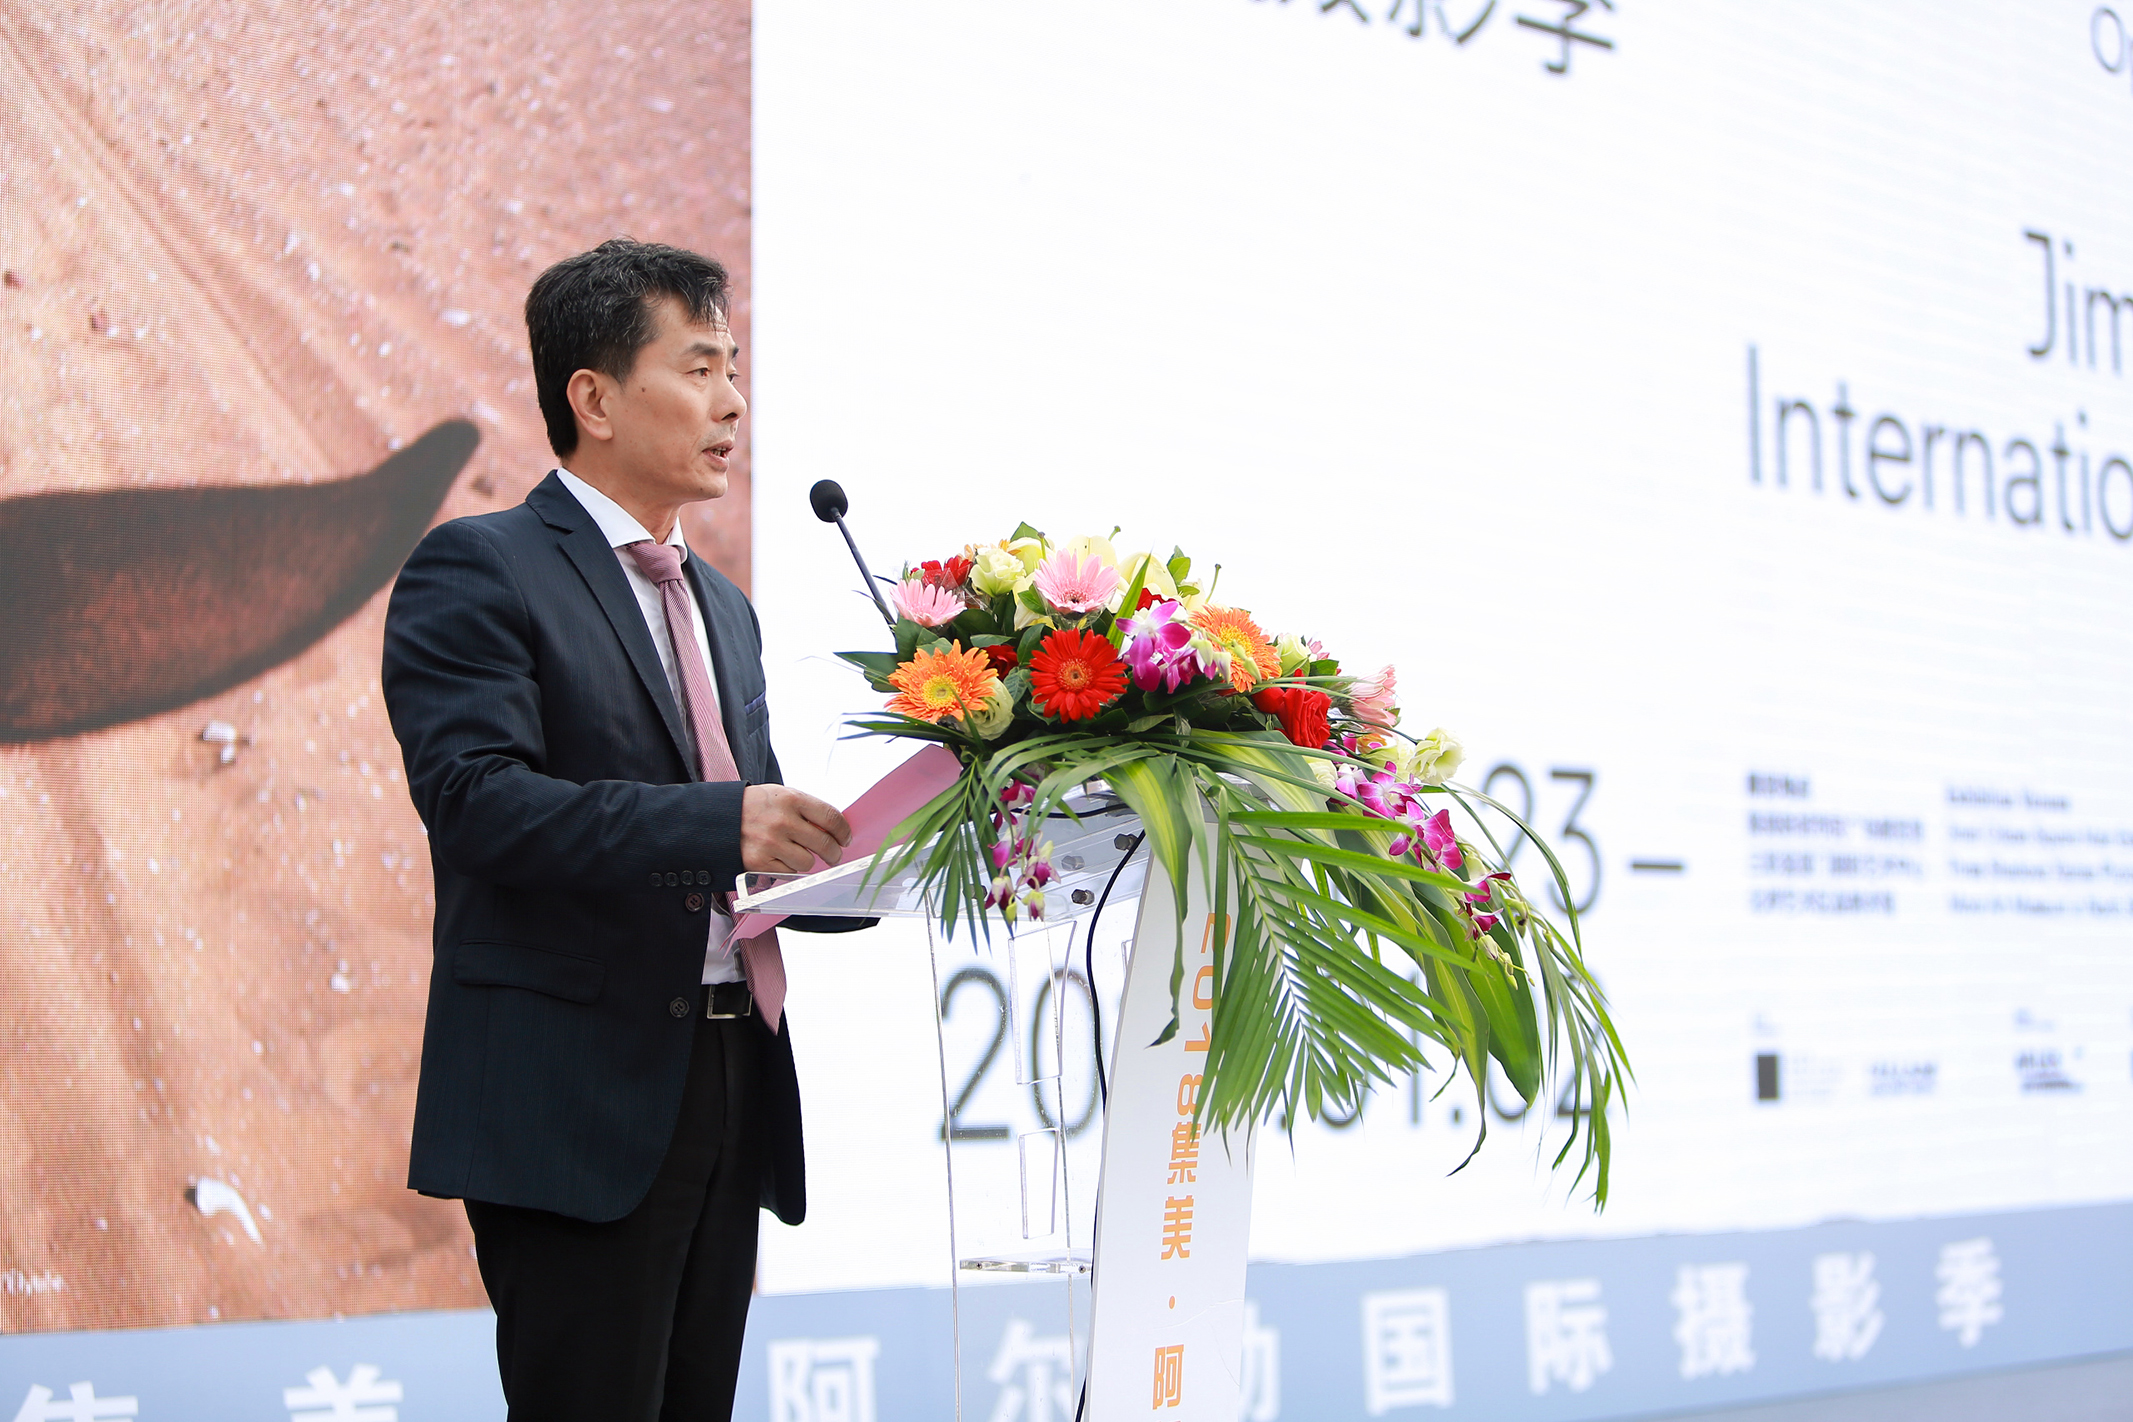 He Dongning, District Chief of Jimei District People's Government